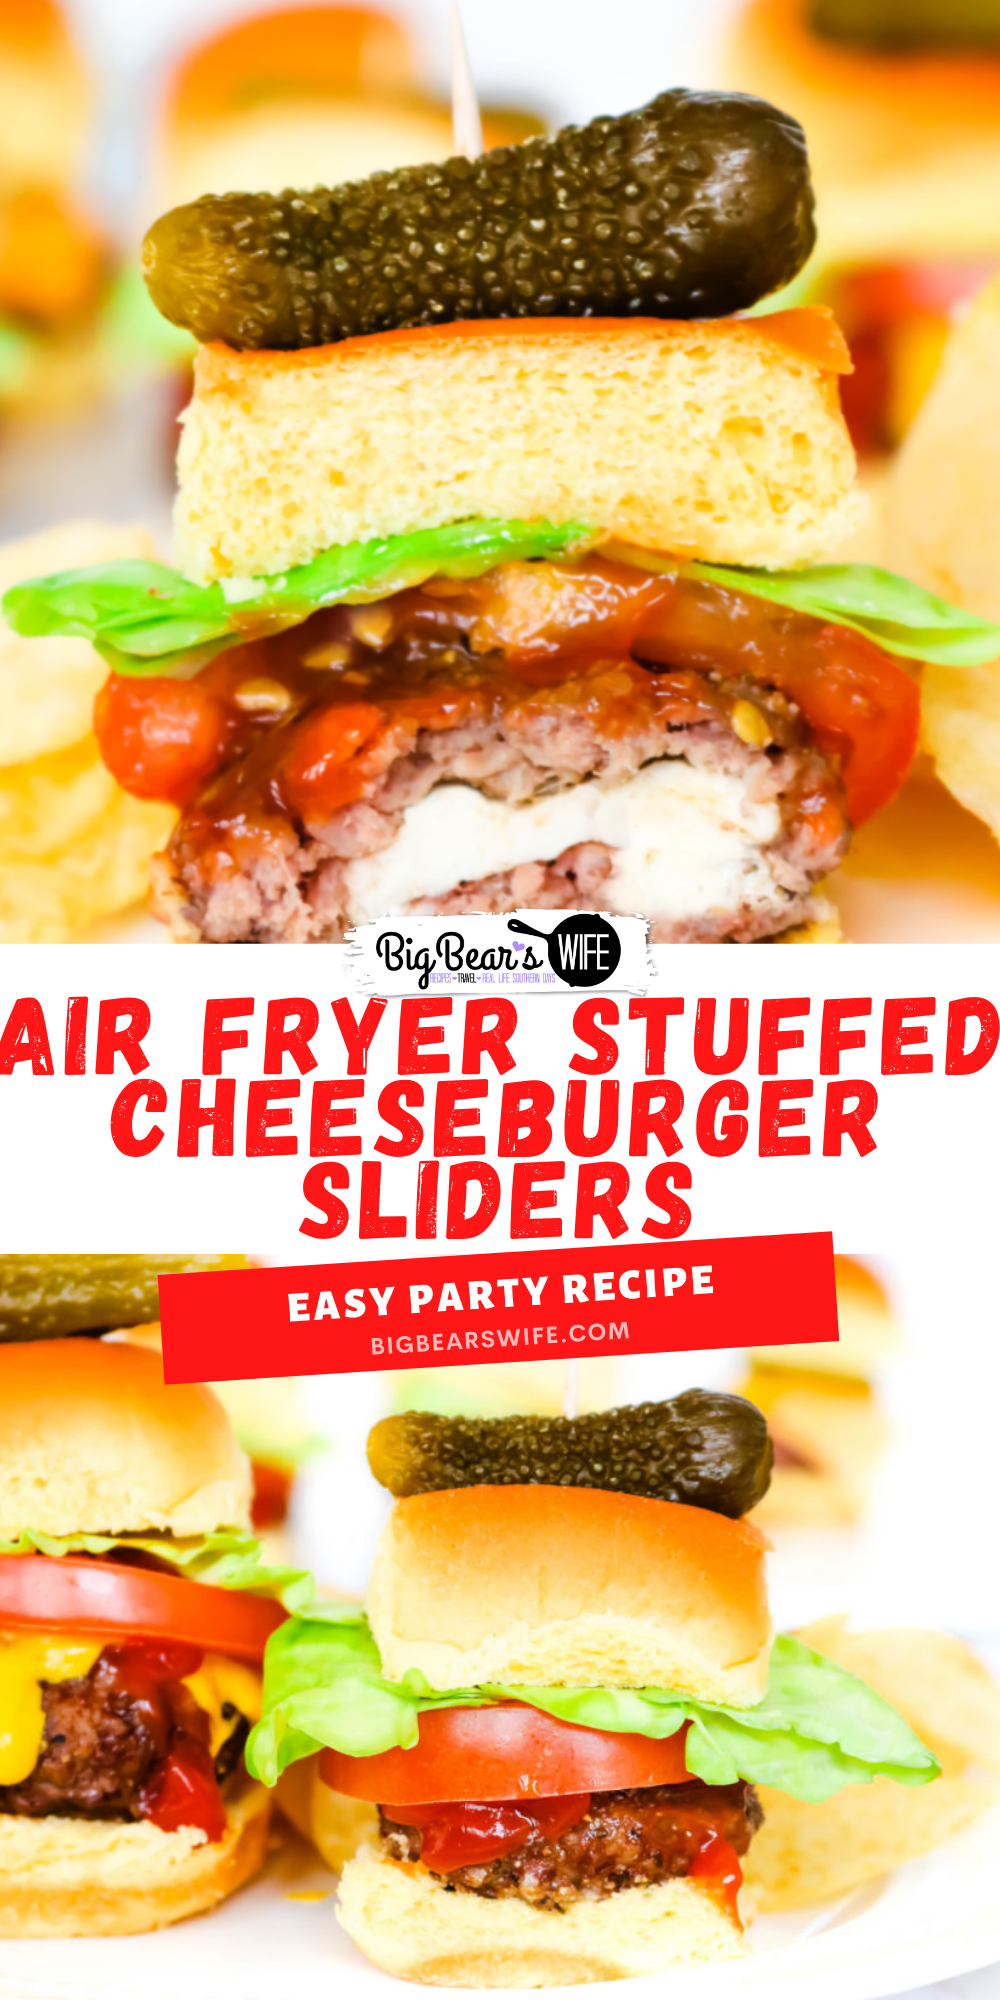 These sliders are stuffed with fresh mozzarella cheese, air-fried and topped with your favorite toppings to create the most amazing Stuffed Cheeseburger Sliders! These are perfect for game day parties or weeknight dinners.  via @bigbearswife